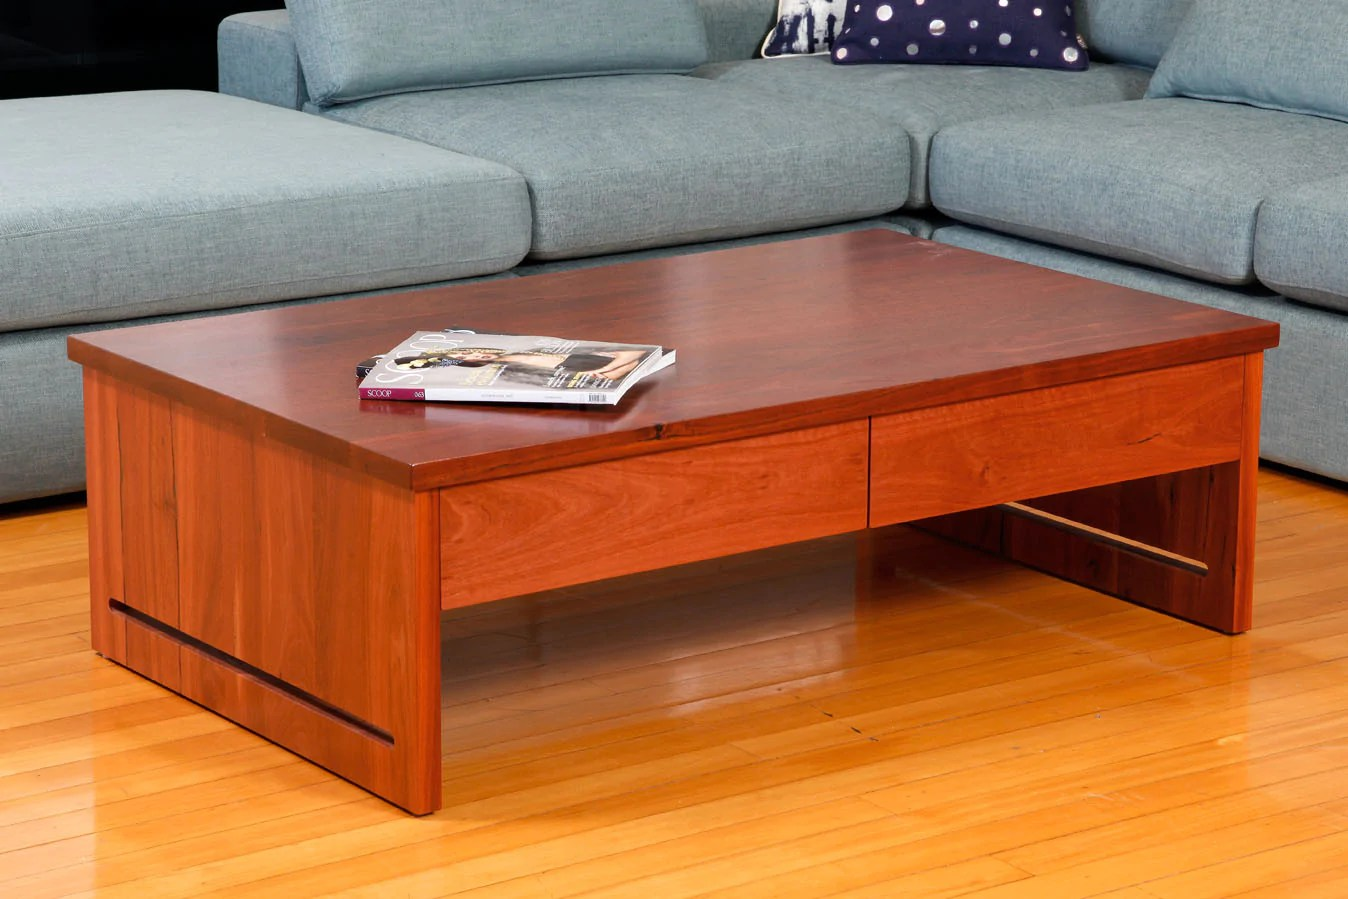 Solid Timber Coffee Table Dwellingup Solid Jarrah Or Marri Coffee Table Bespoke Furniture